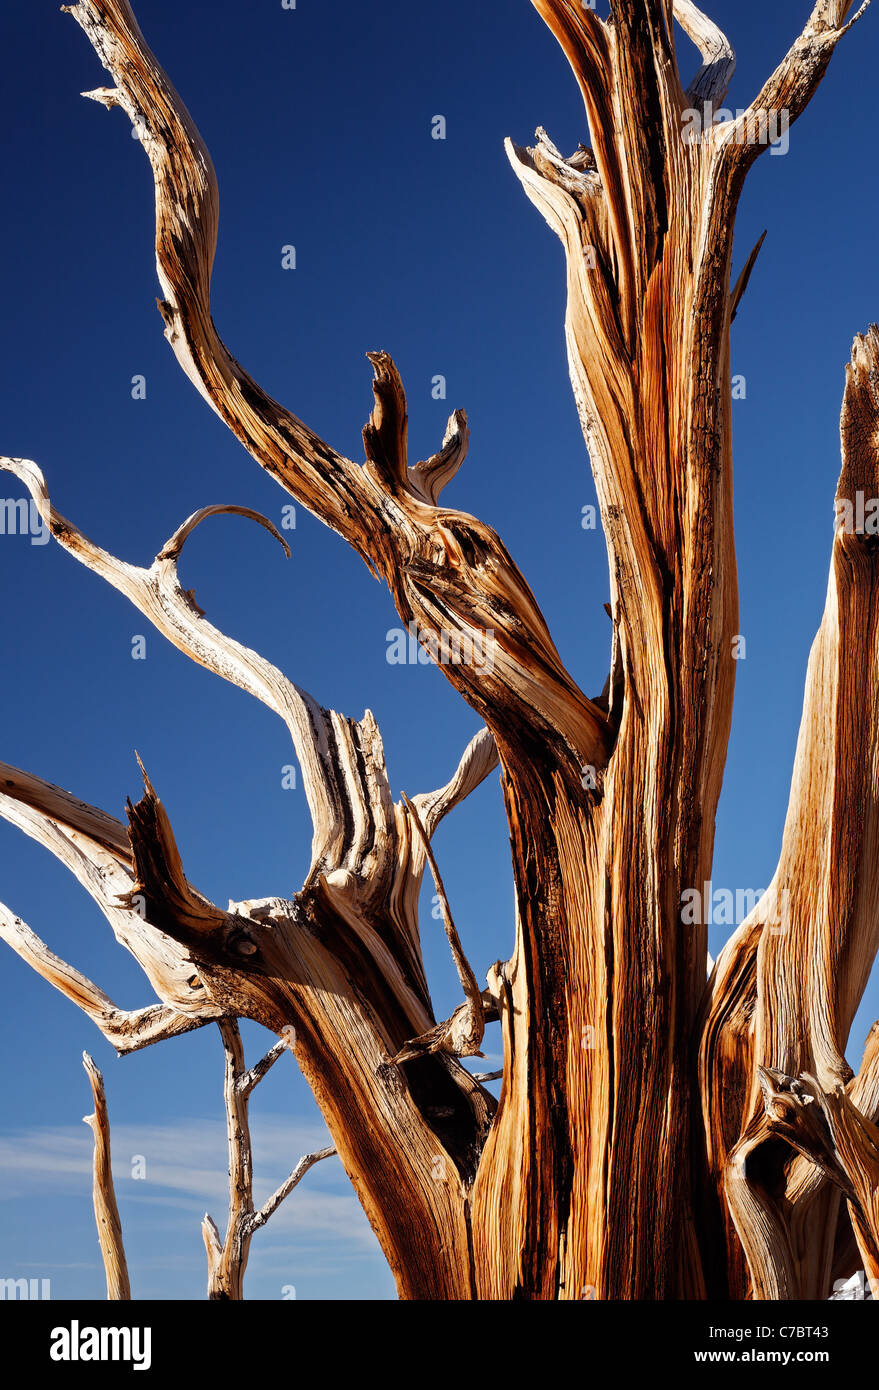 Bristlecone pine, Inyo National Forest, White Mountains, California, USA - Stock Image